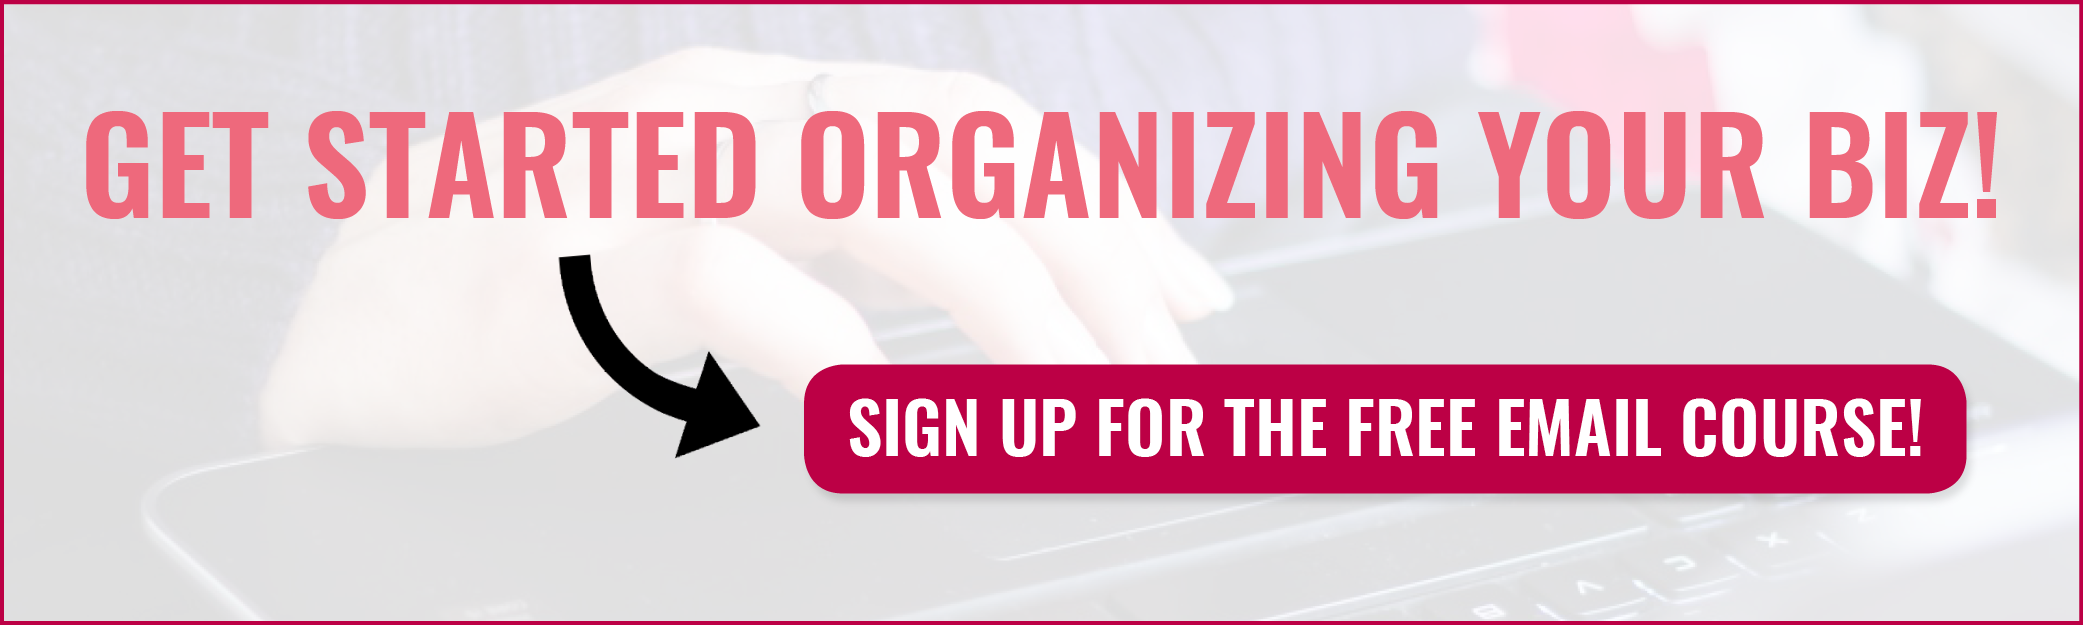 Get Started Organizing Your Biz Miranda Nahmias